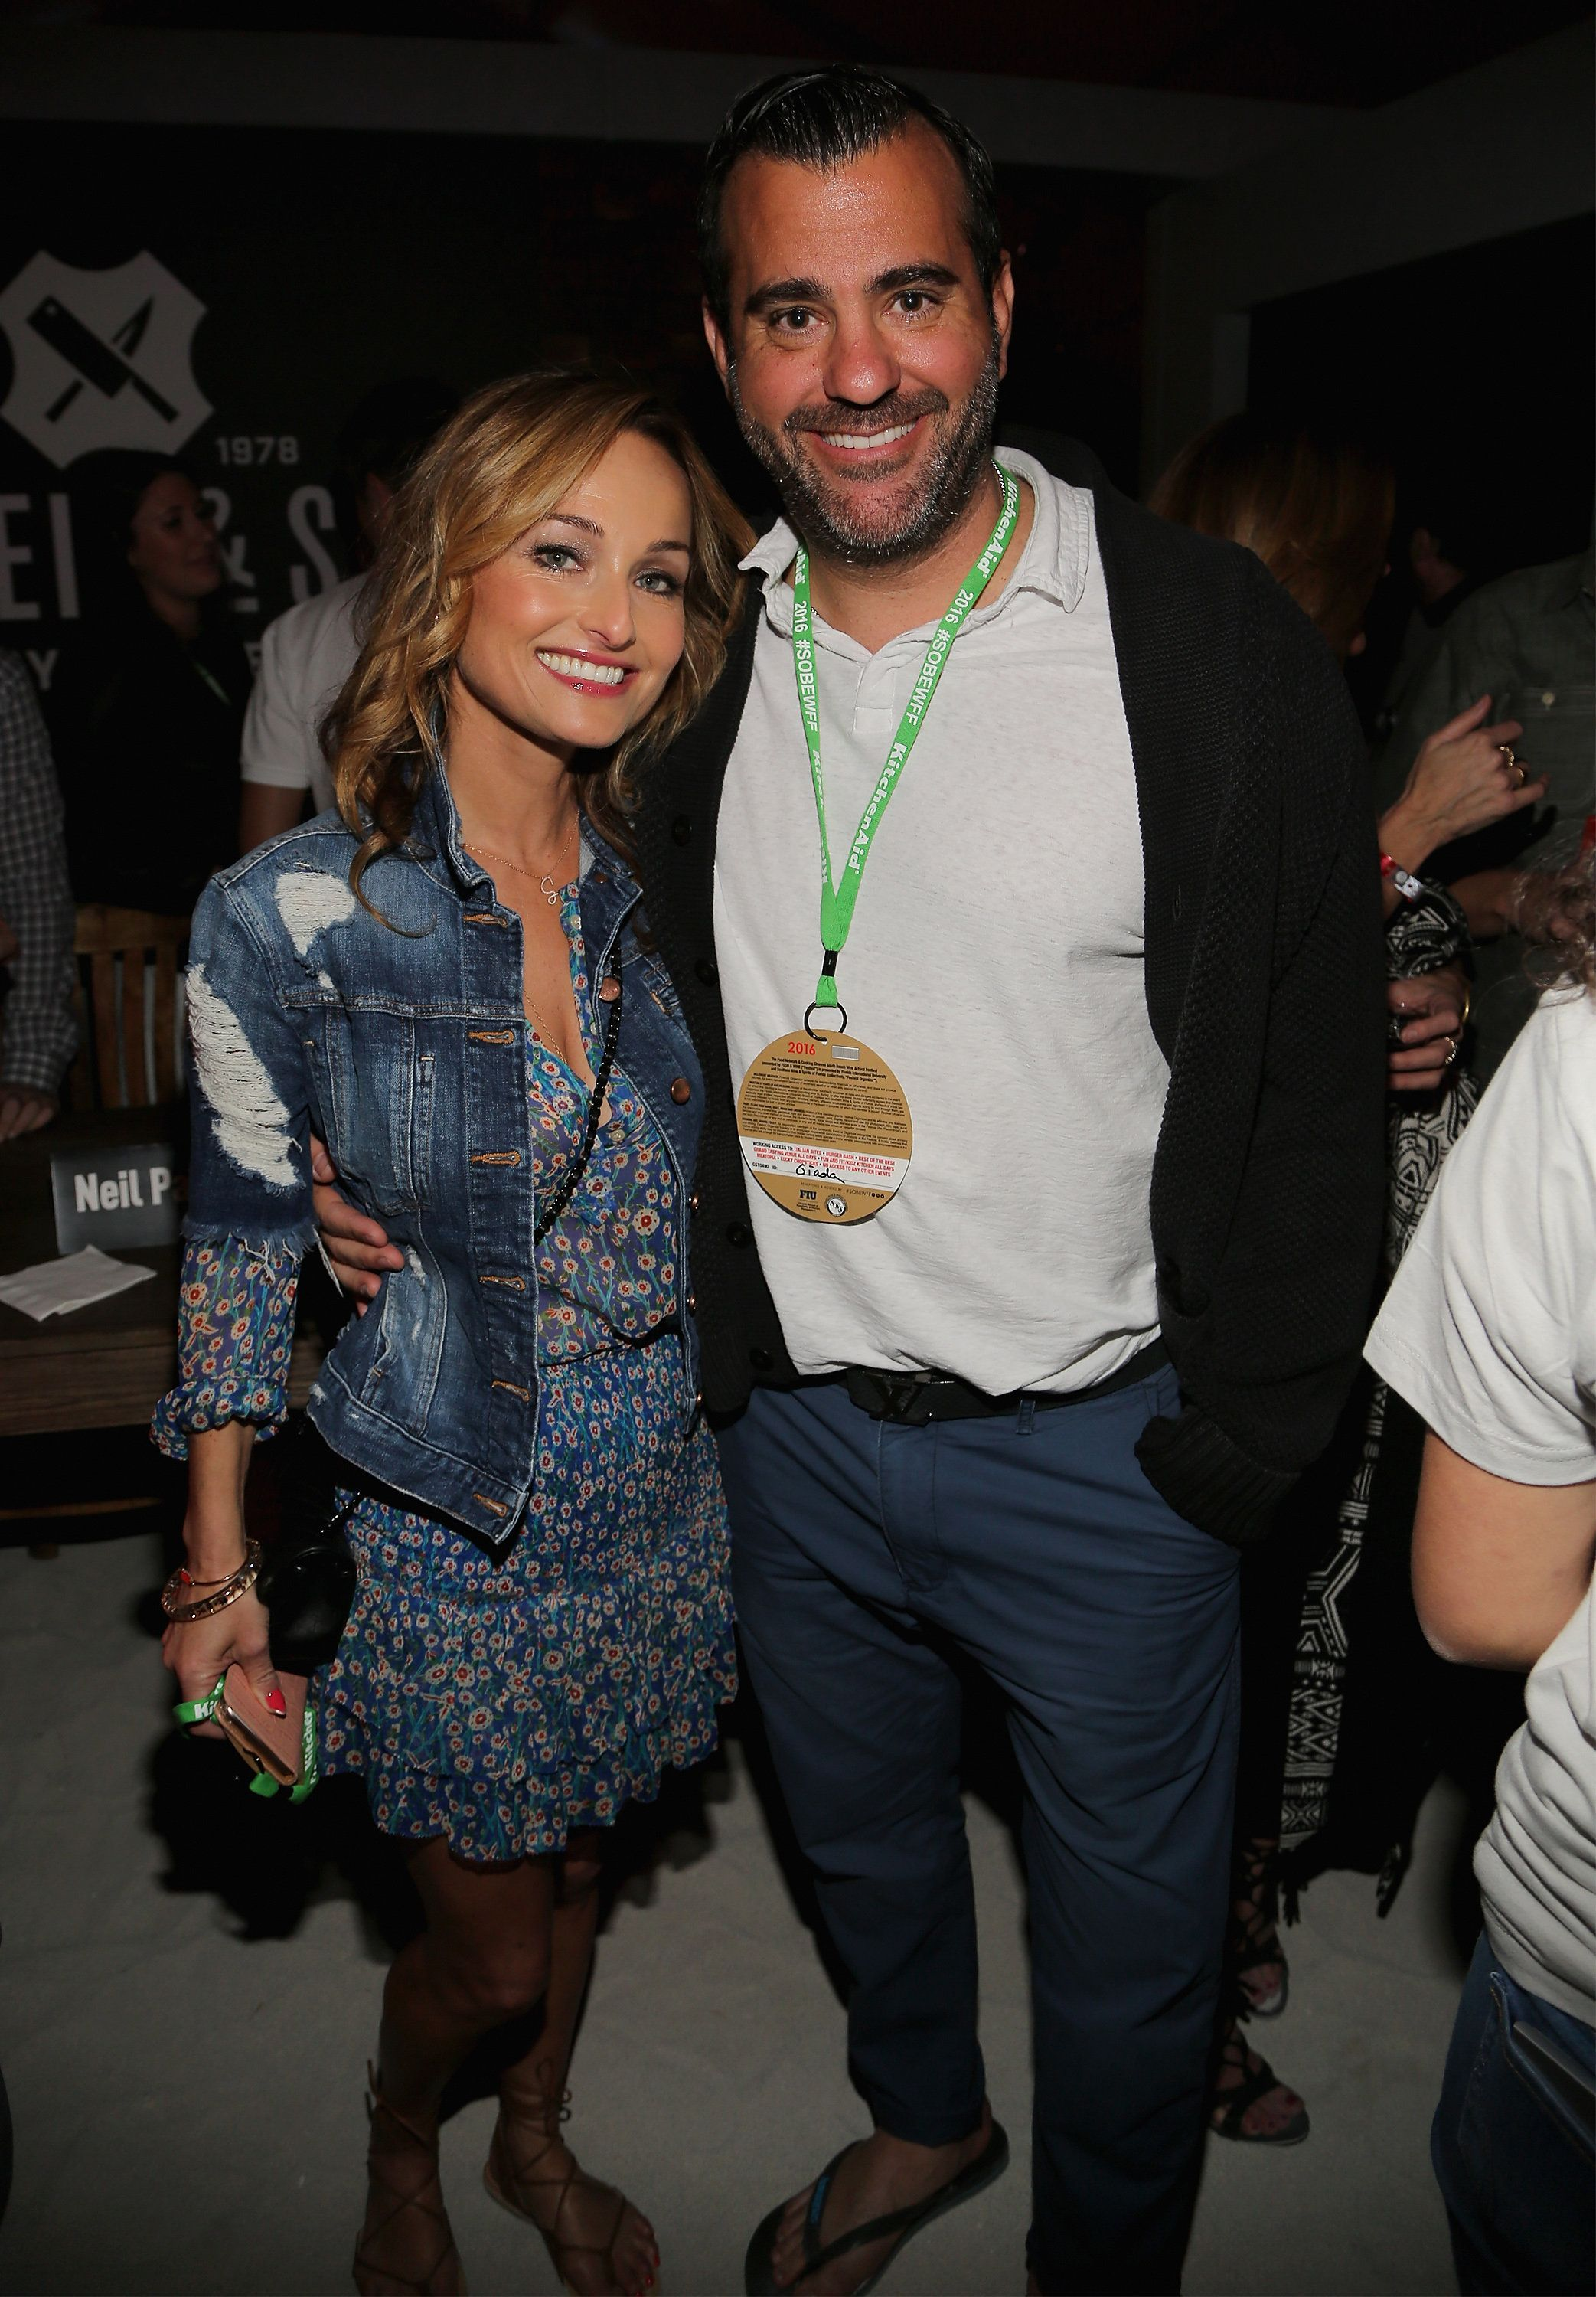 Giada De Laurentiis and Shane Farley attend the Burger Bash beach party held in Miami